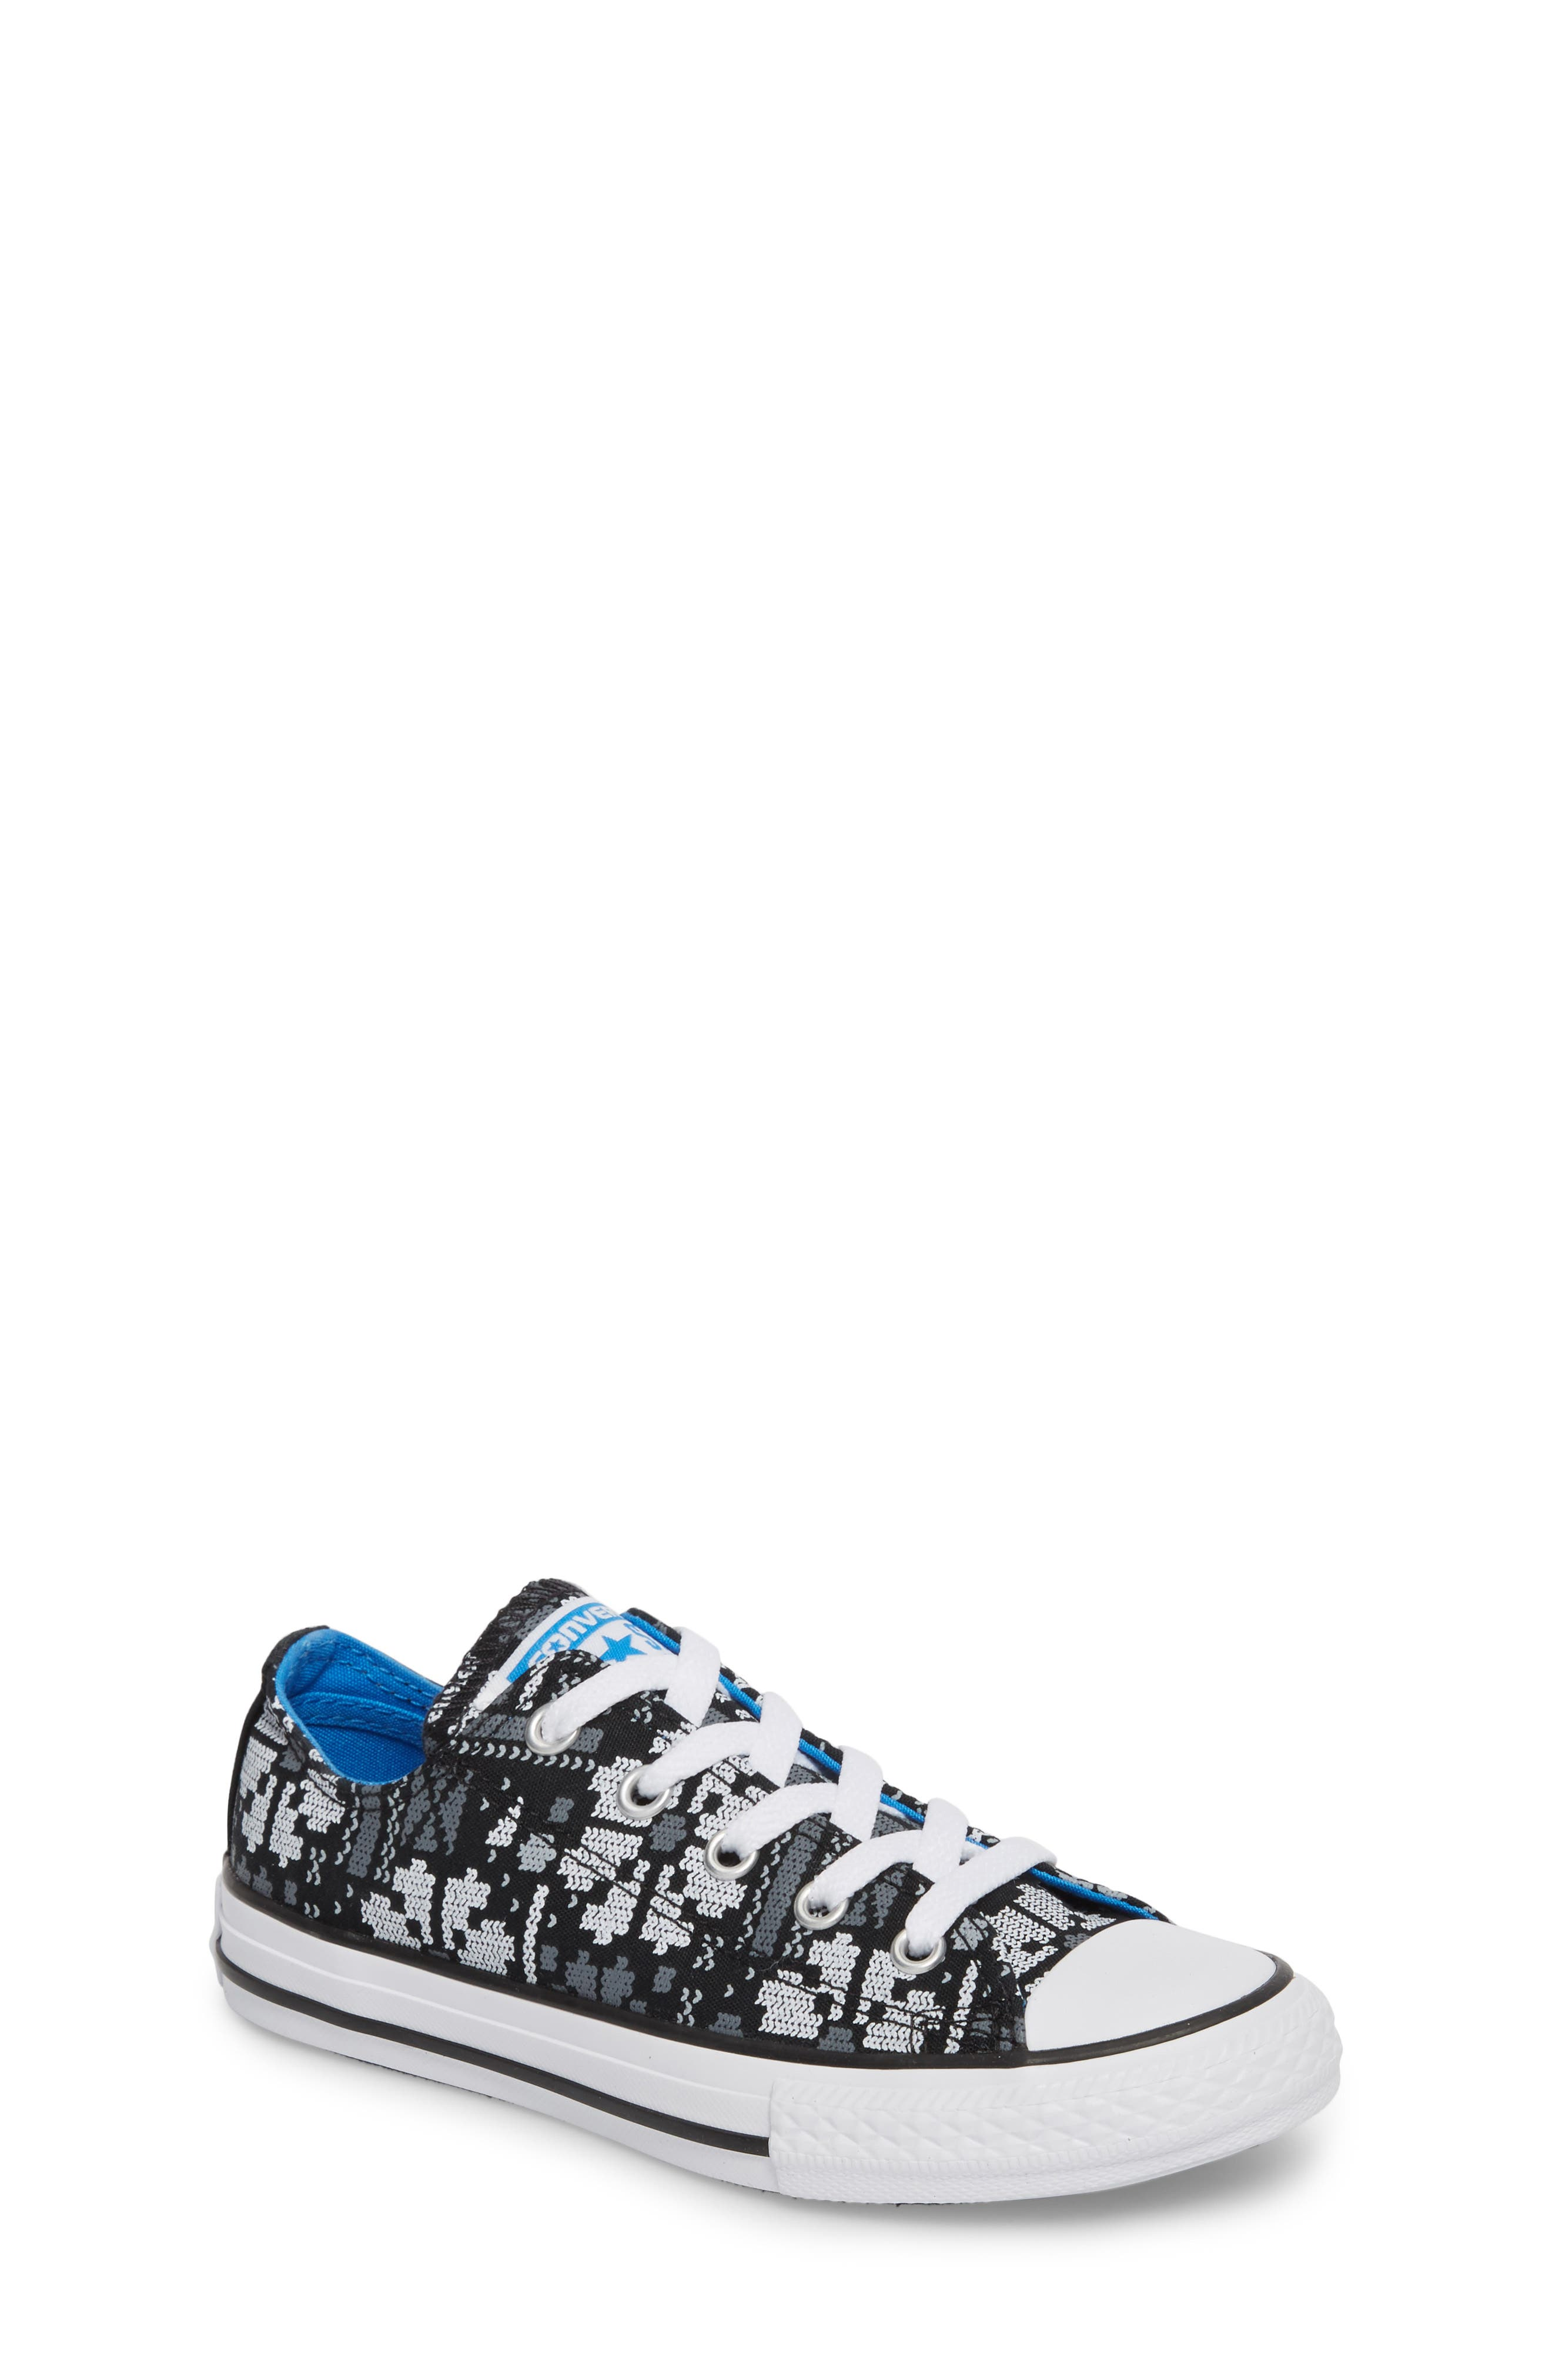 Chuck Taylor<sup>®</sup> All Star<sup>®</sup> Winter Ox Sneaker,                             Main thumbnail 1, color,                             Black Canvas